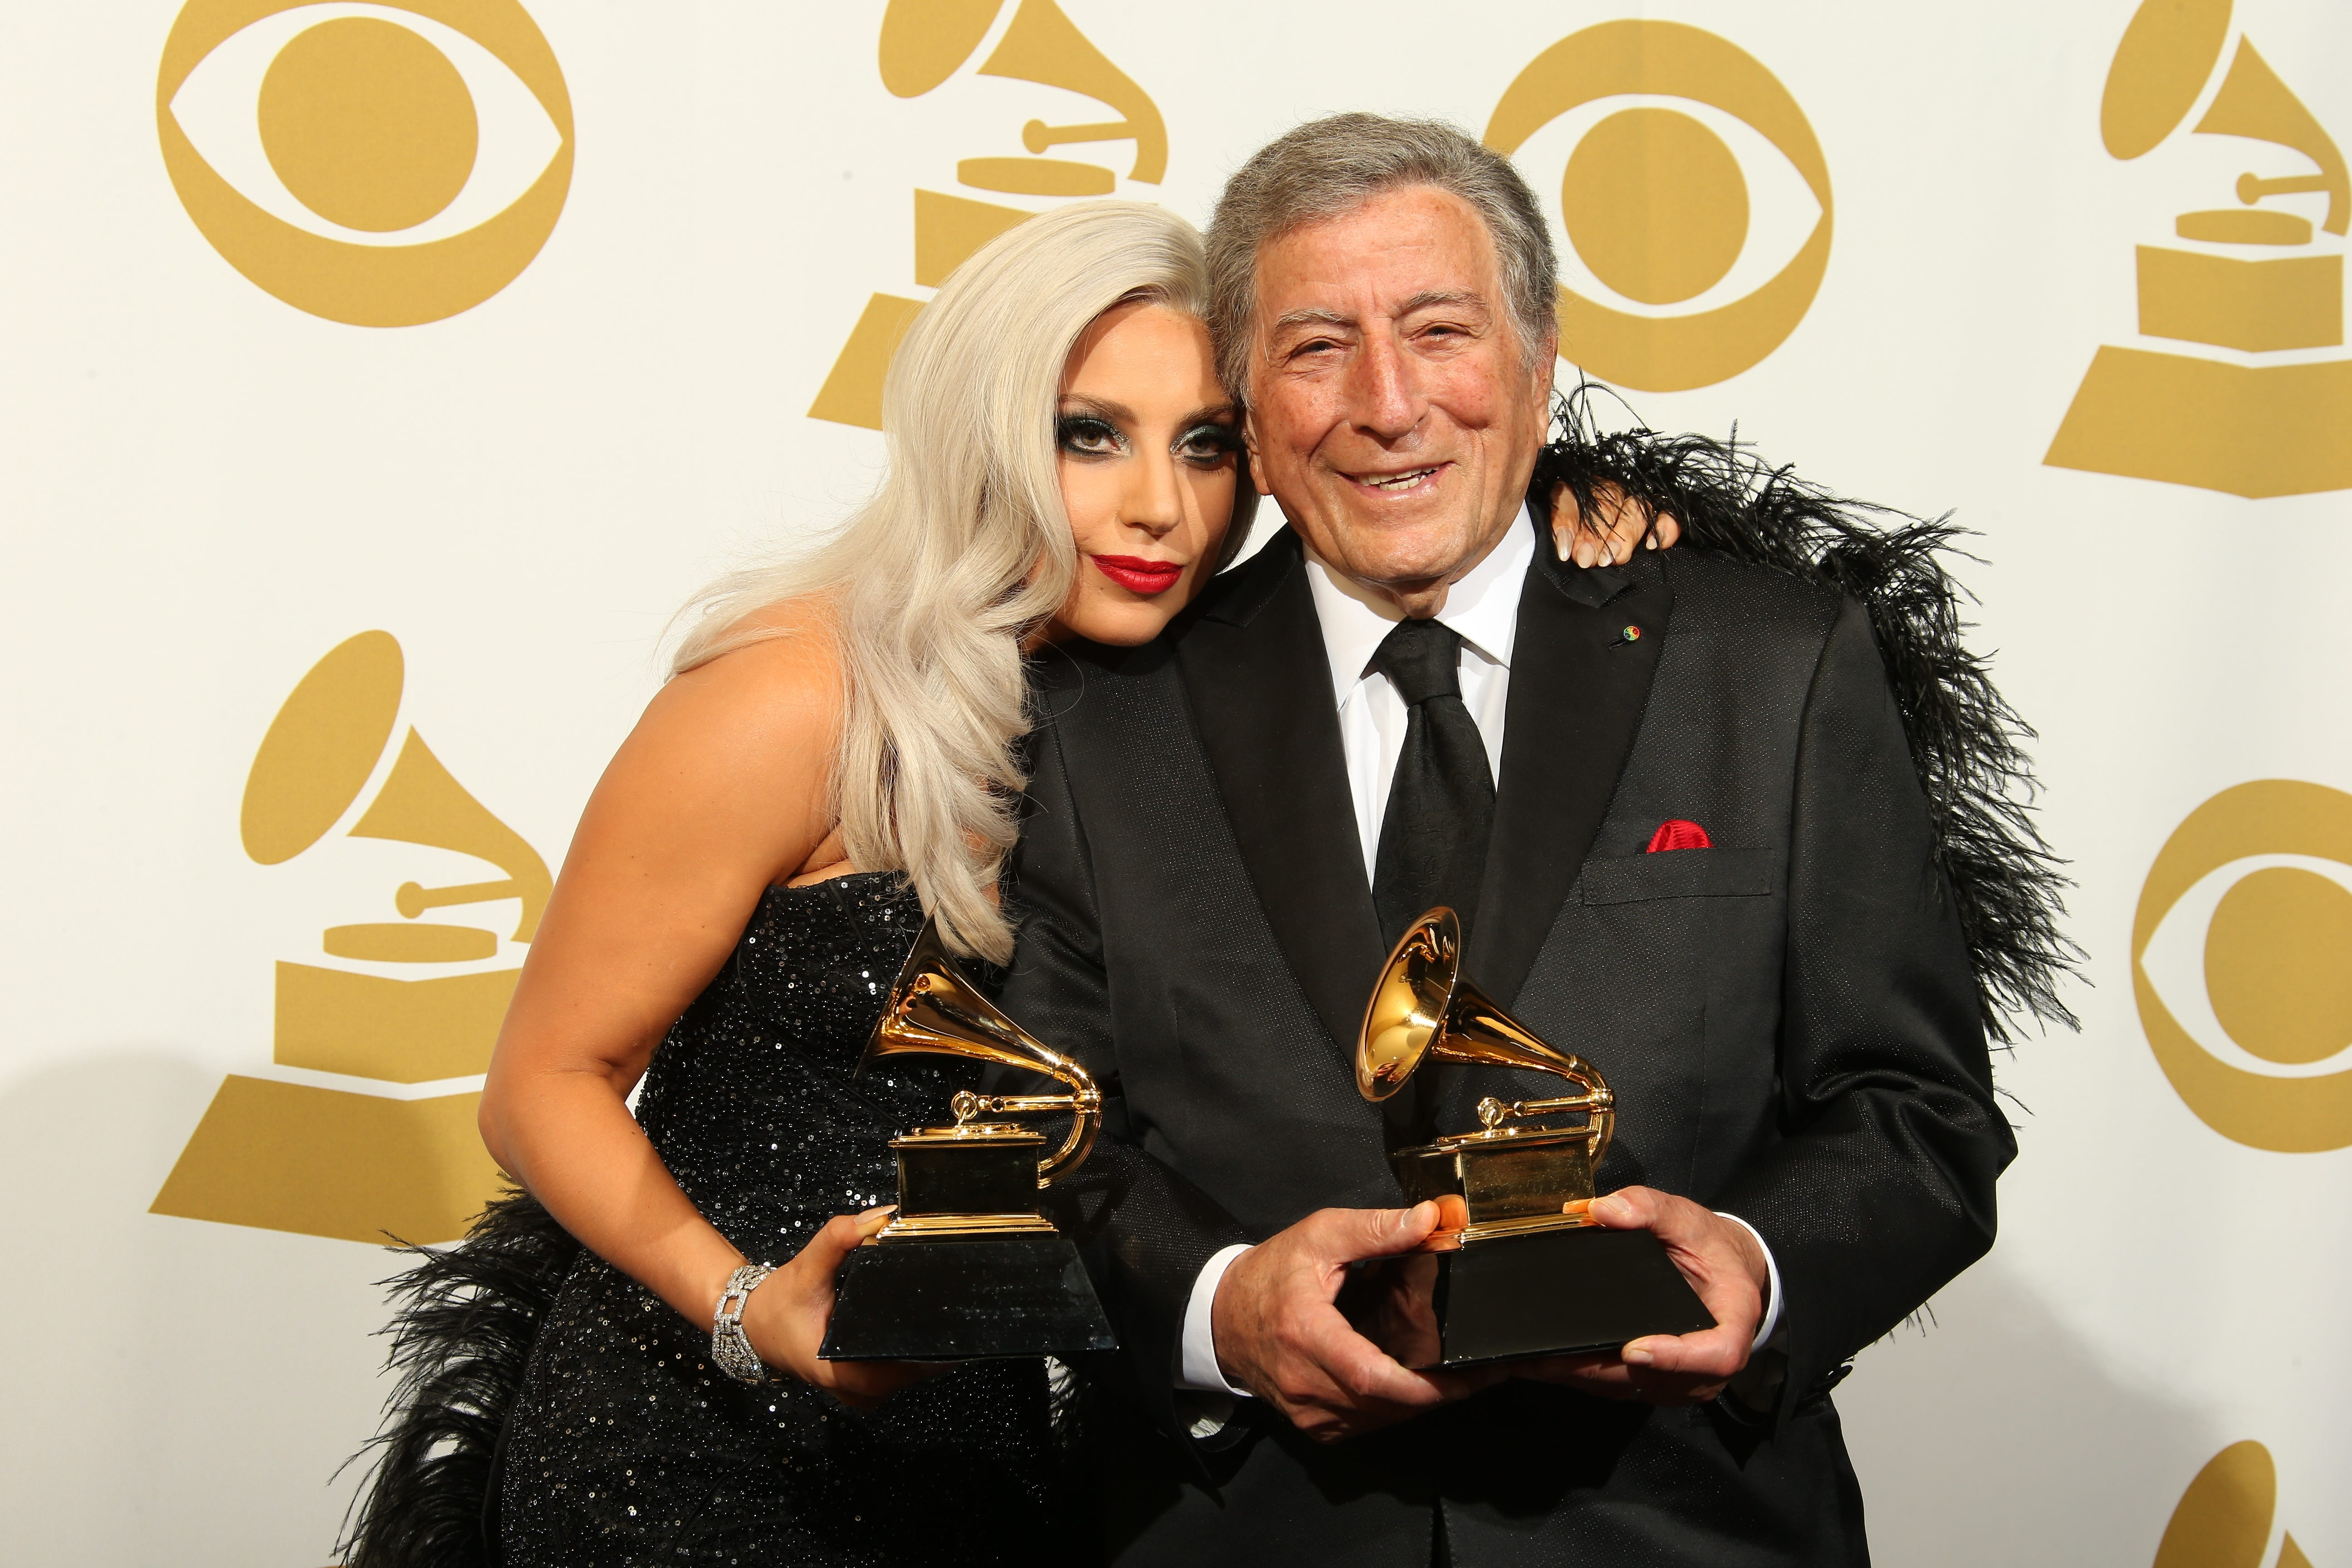 Tony Bennett performing with Lady Gaga one last time after revealing battle with Alzheimer's disease